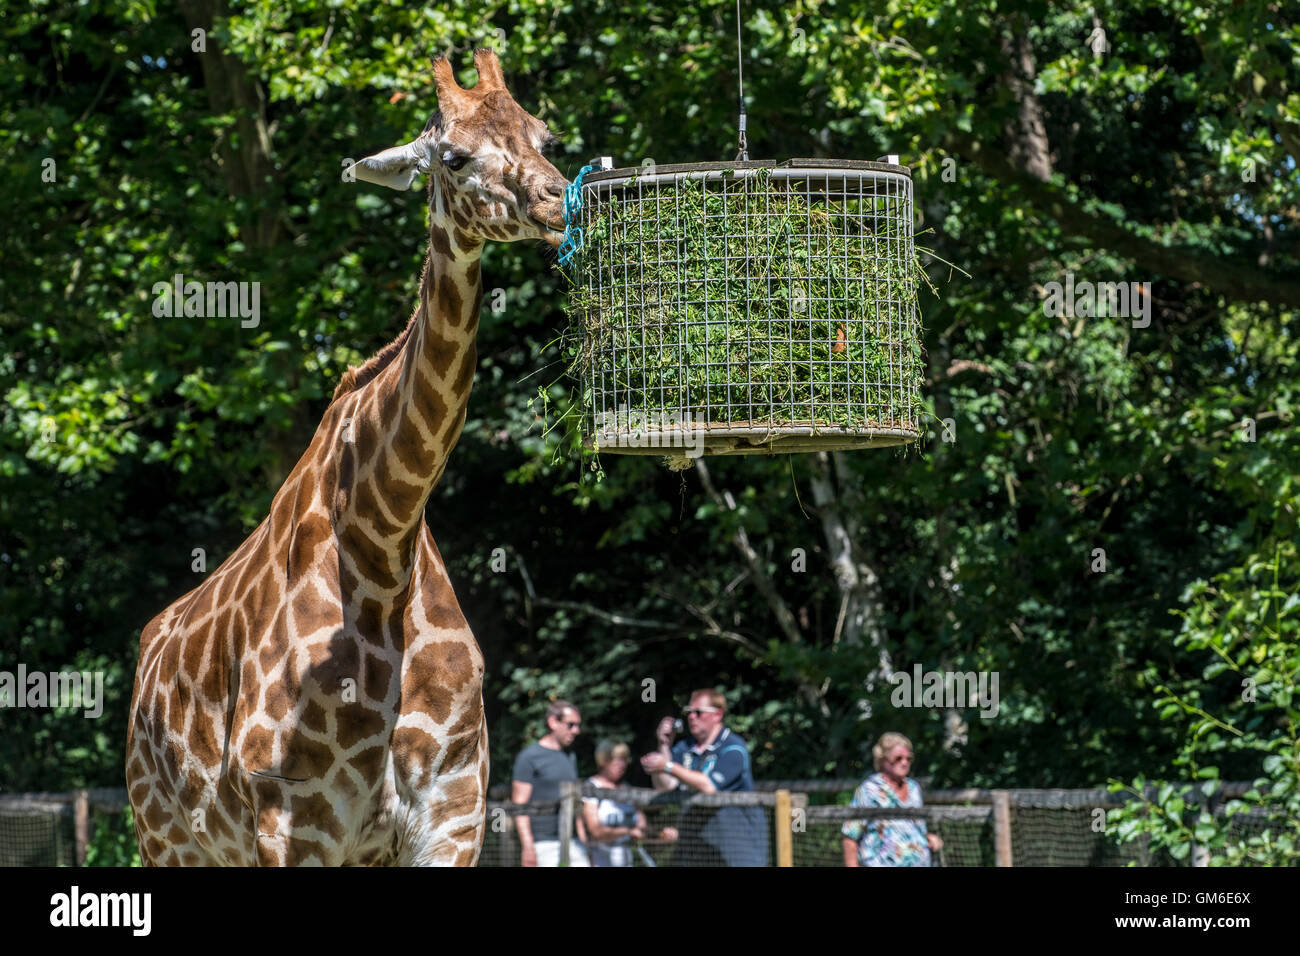 Visitors passing by giraffe eating grass during feeding time in zoo - Stock Image